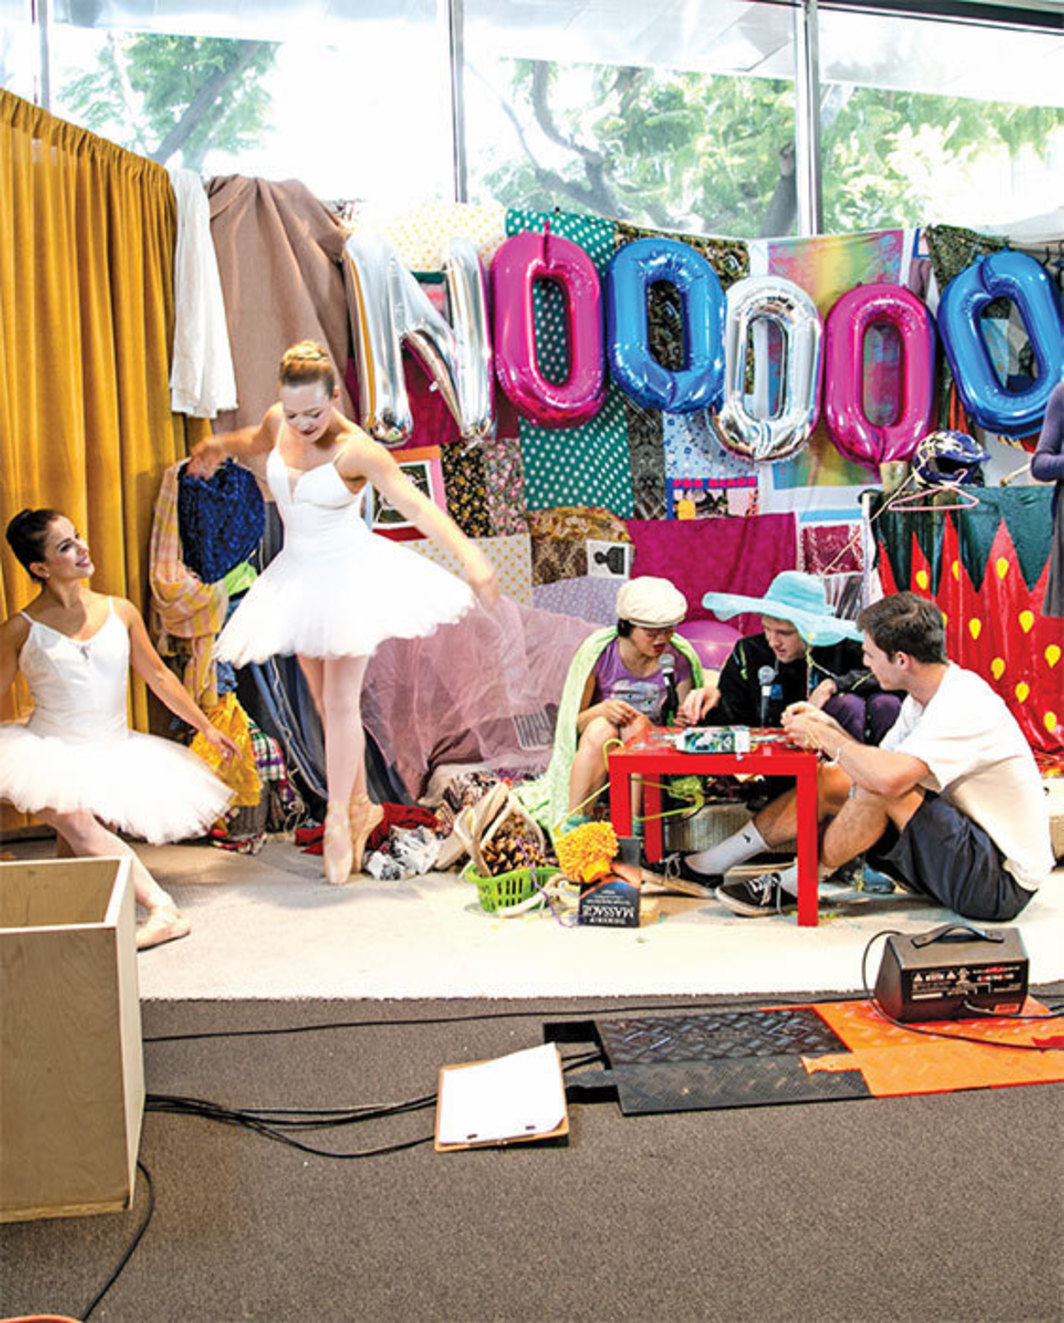 John Burtle, Rebecca Correia, 